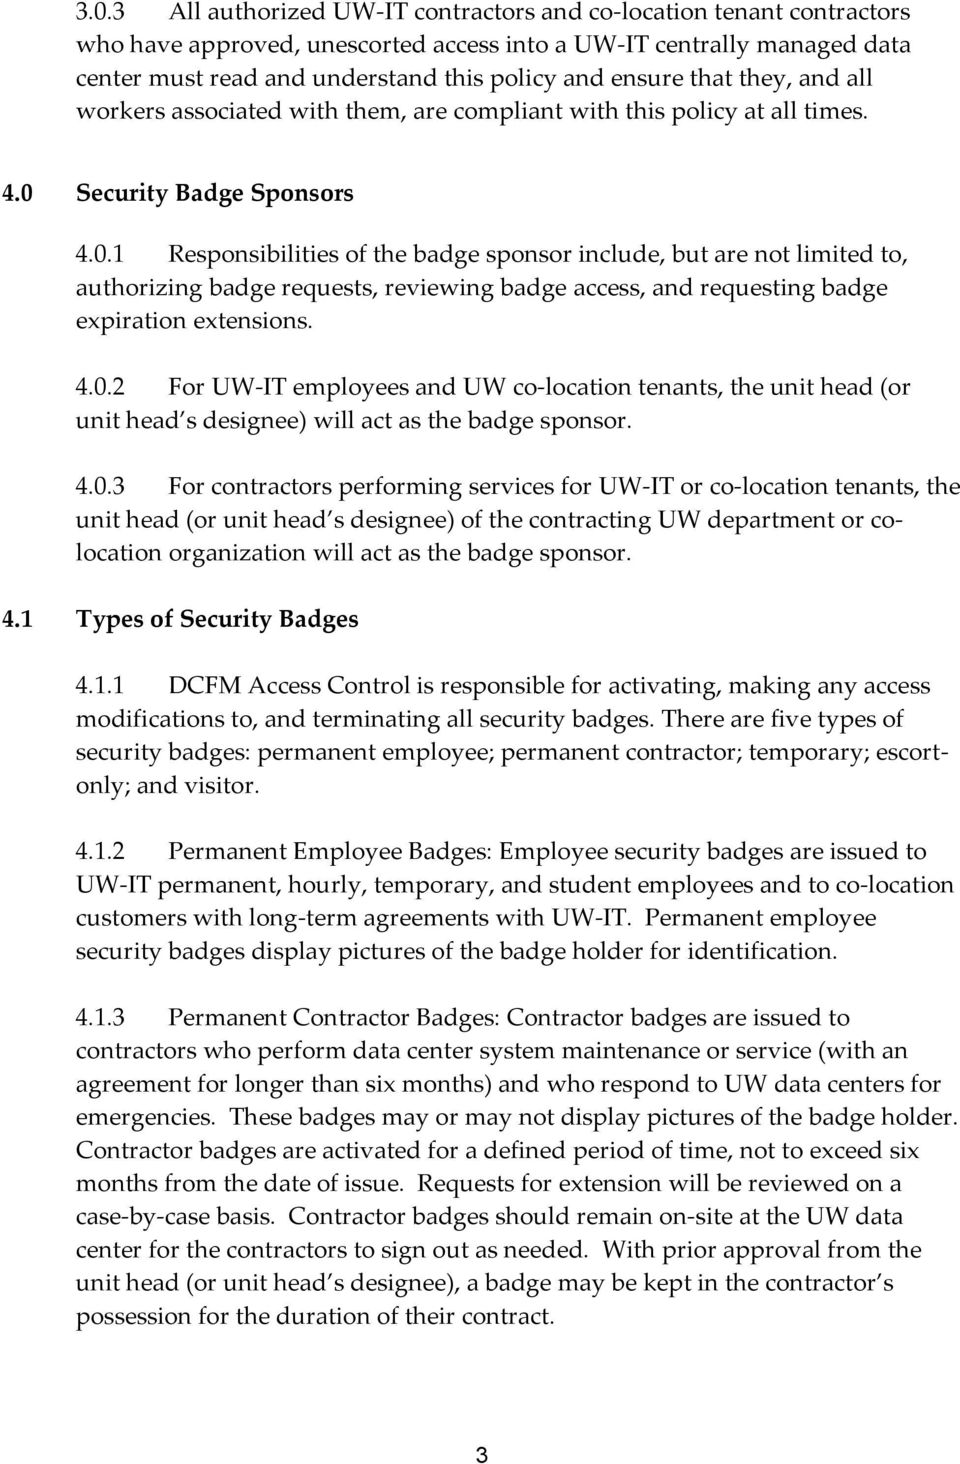 Security Badge Sponsors 4.0.1 Responsibilities of the badge sponsor include, but are not limited to, authorizing badge requests, reviewing badge access, and requesting badge expiration extensions. 4.0.2 For UW-IT employees and UW co-location tenants, the unit head (or unit head s designee) will act as the badge sponsor.